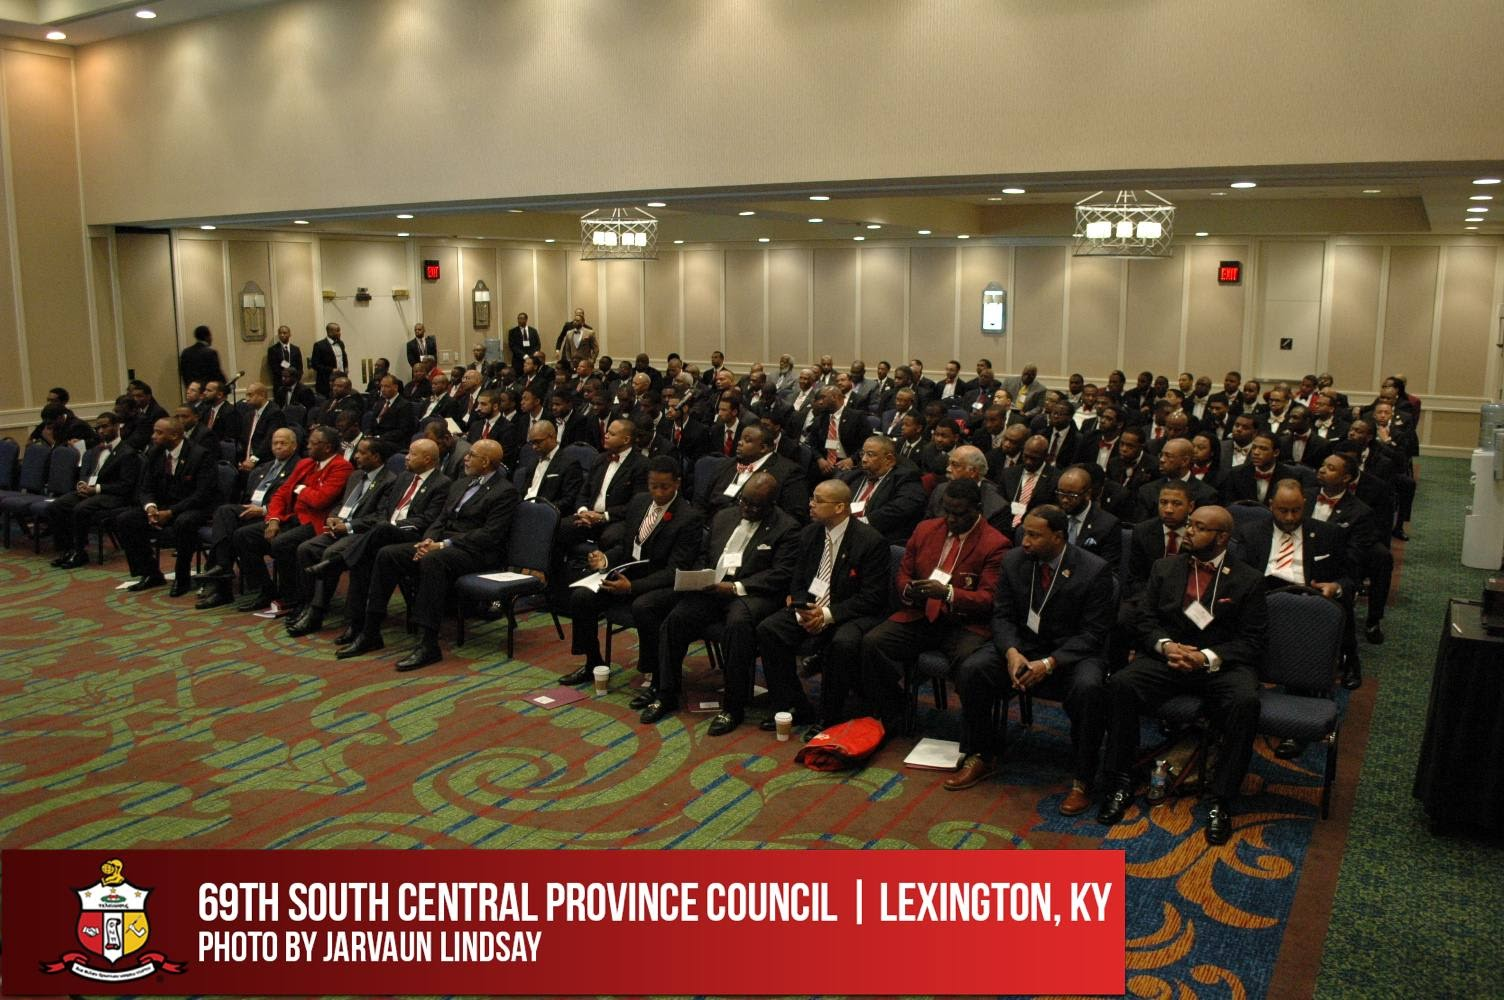 3rd business session - 69th Province Council